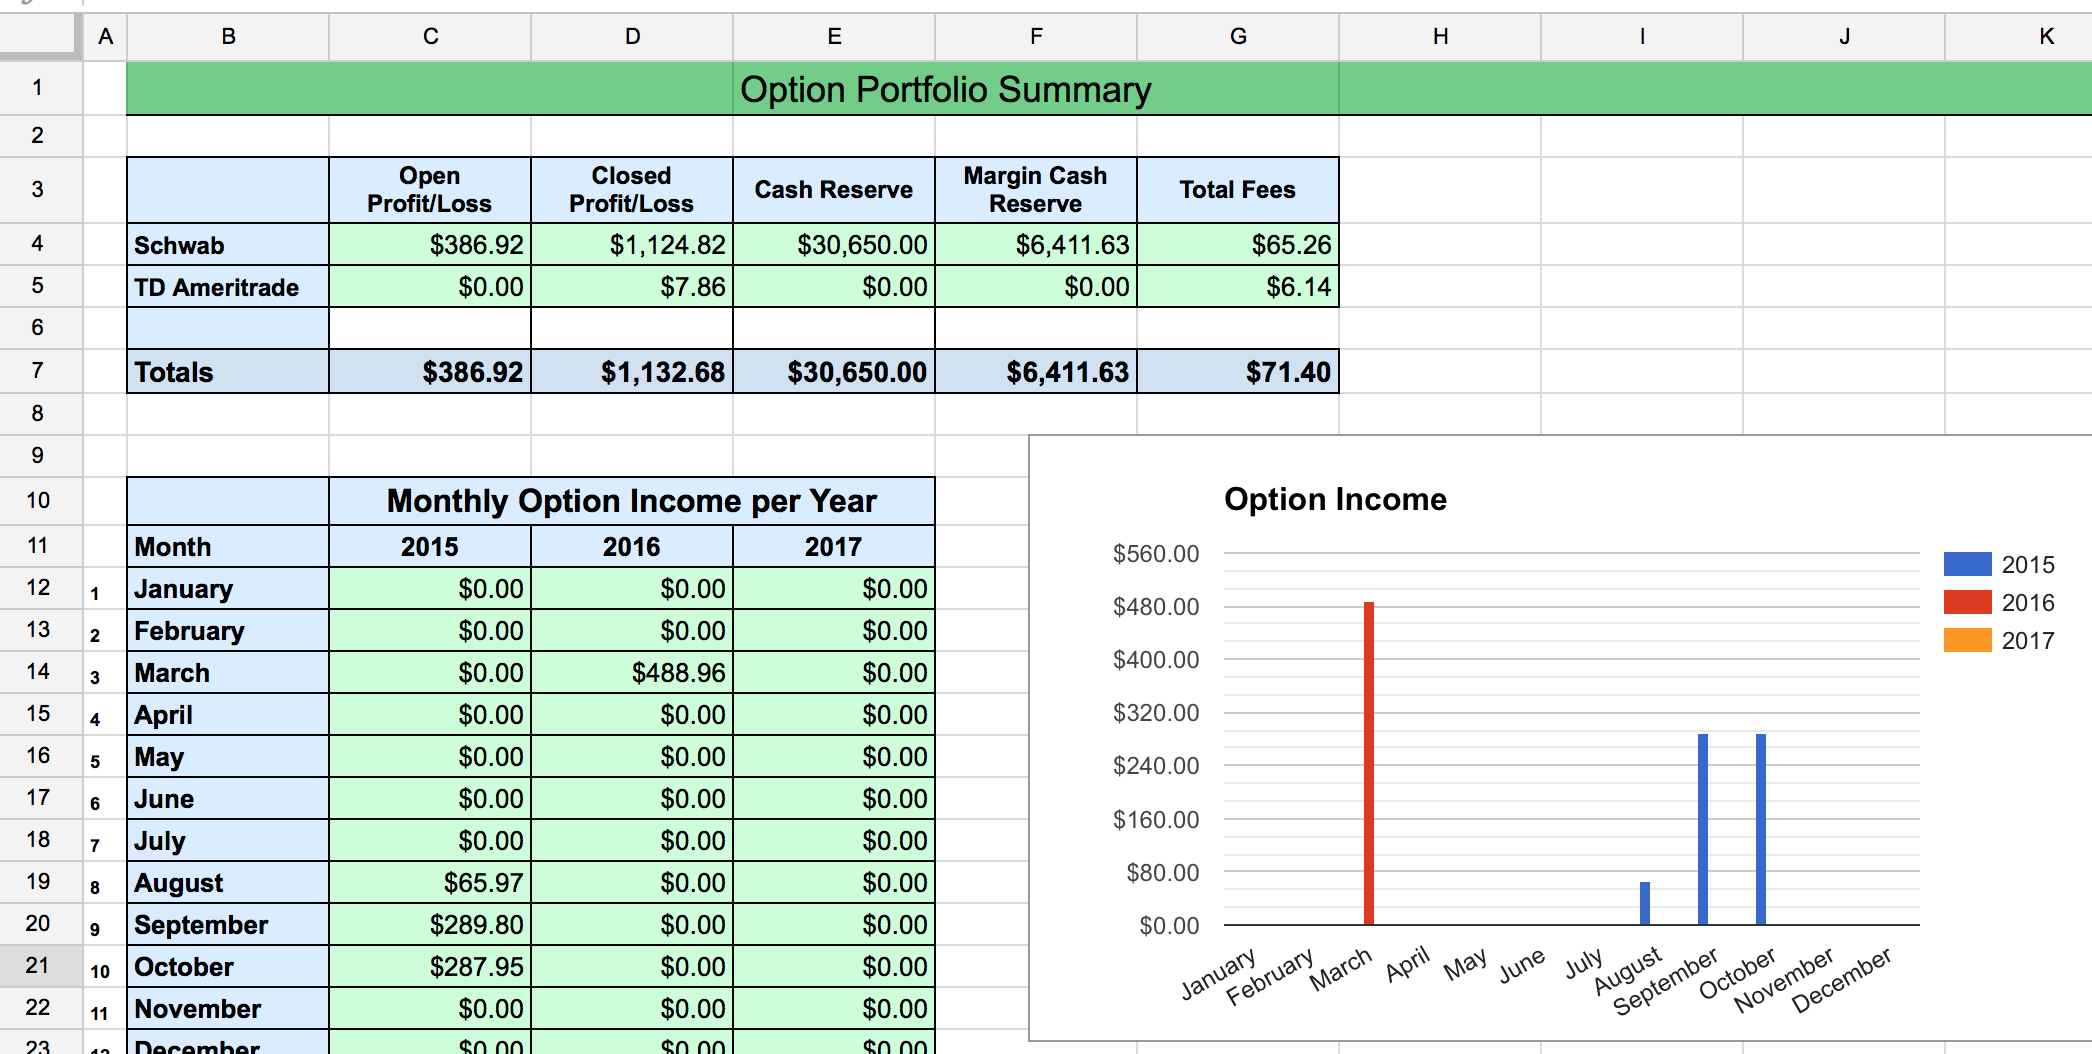 Insurance Commission Tracking Spreadsheet In Options Tracker Spreadsheet – Two Investing In Commission Tracking